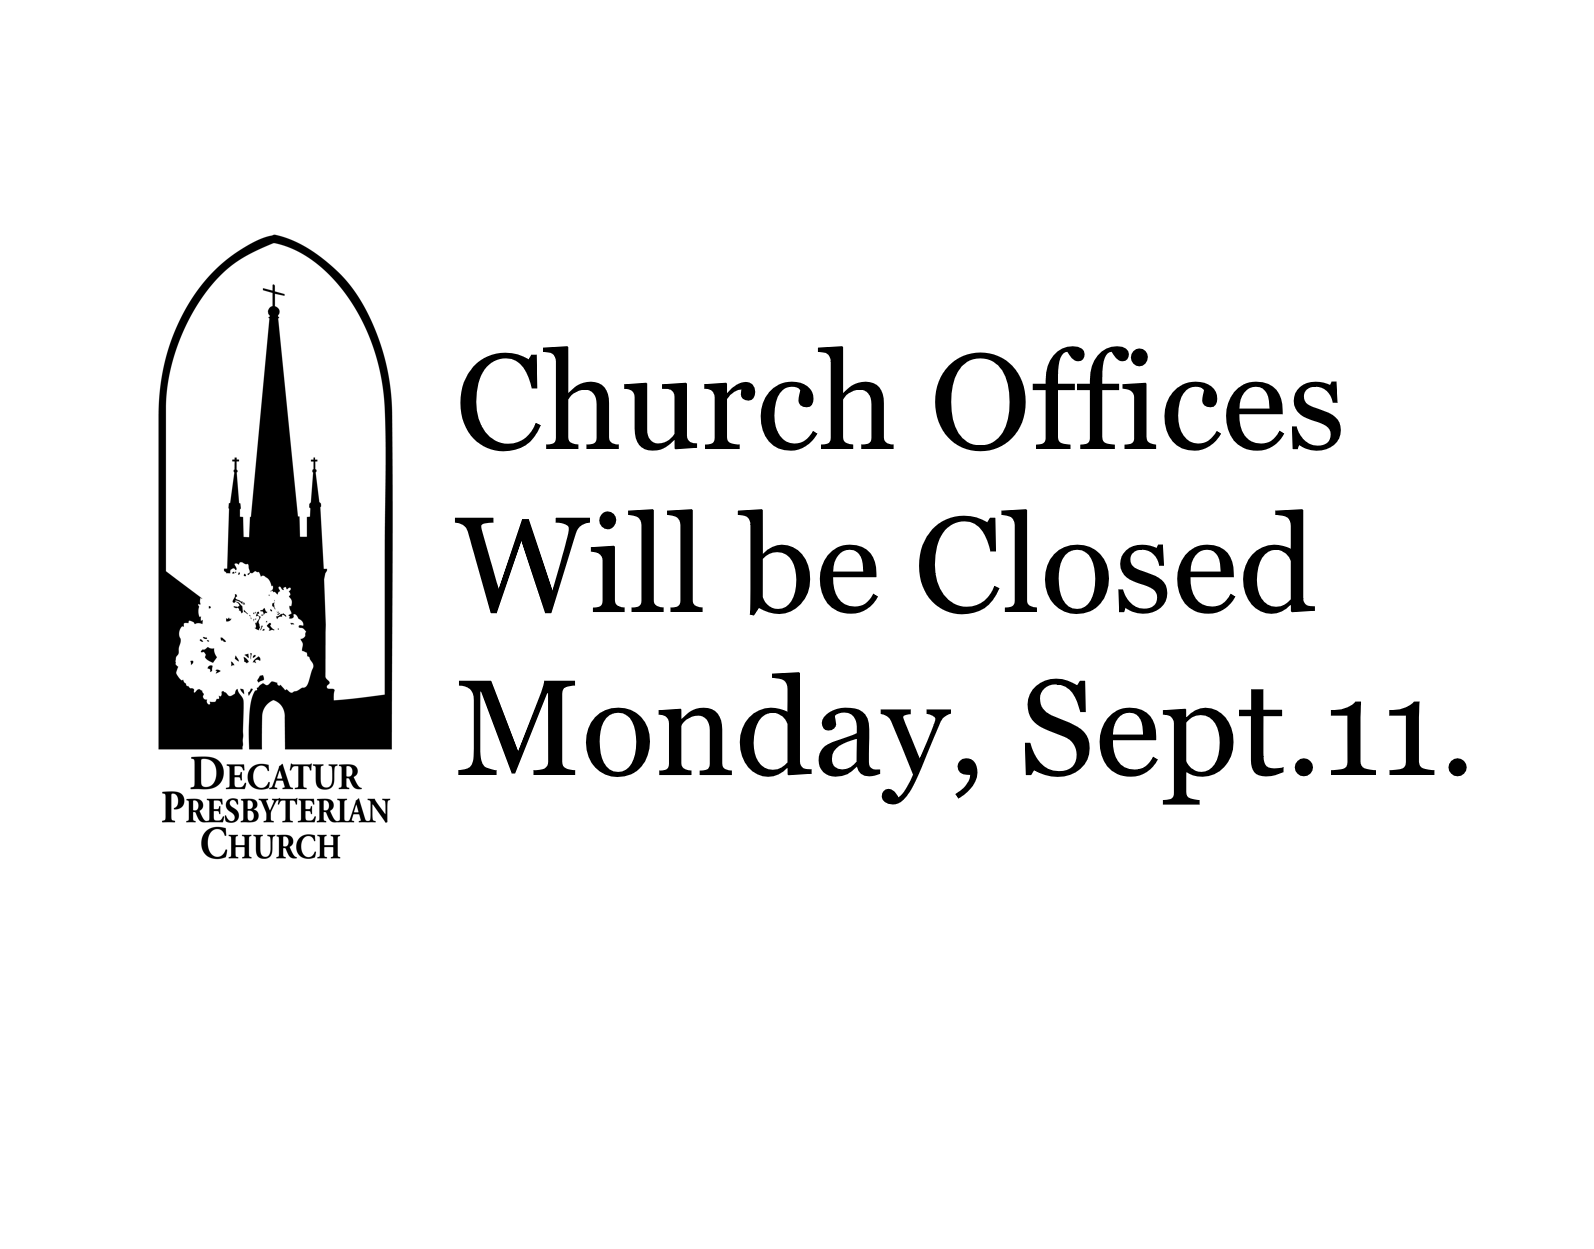 Decatur Presbyterian Church DPC Offices CLOSED for Irma: 9